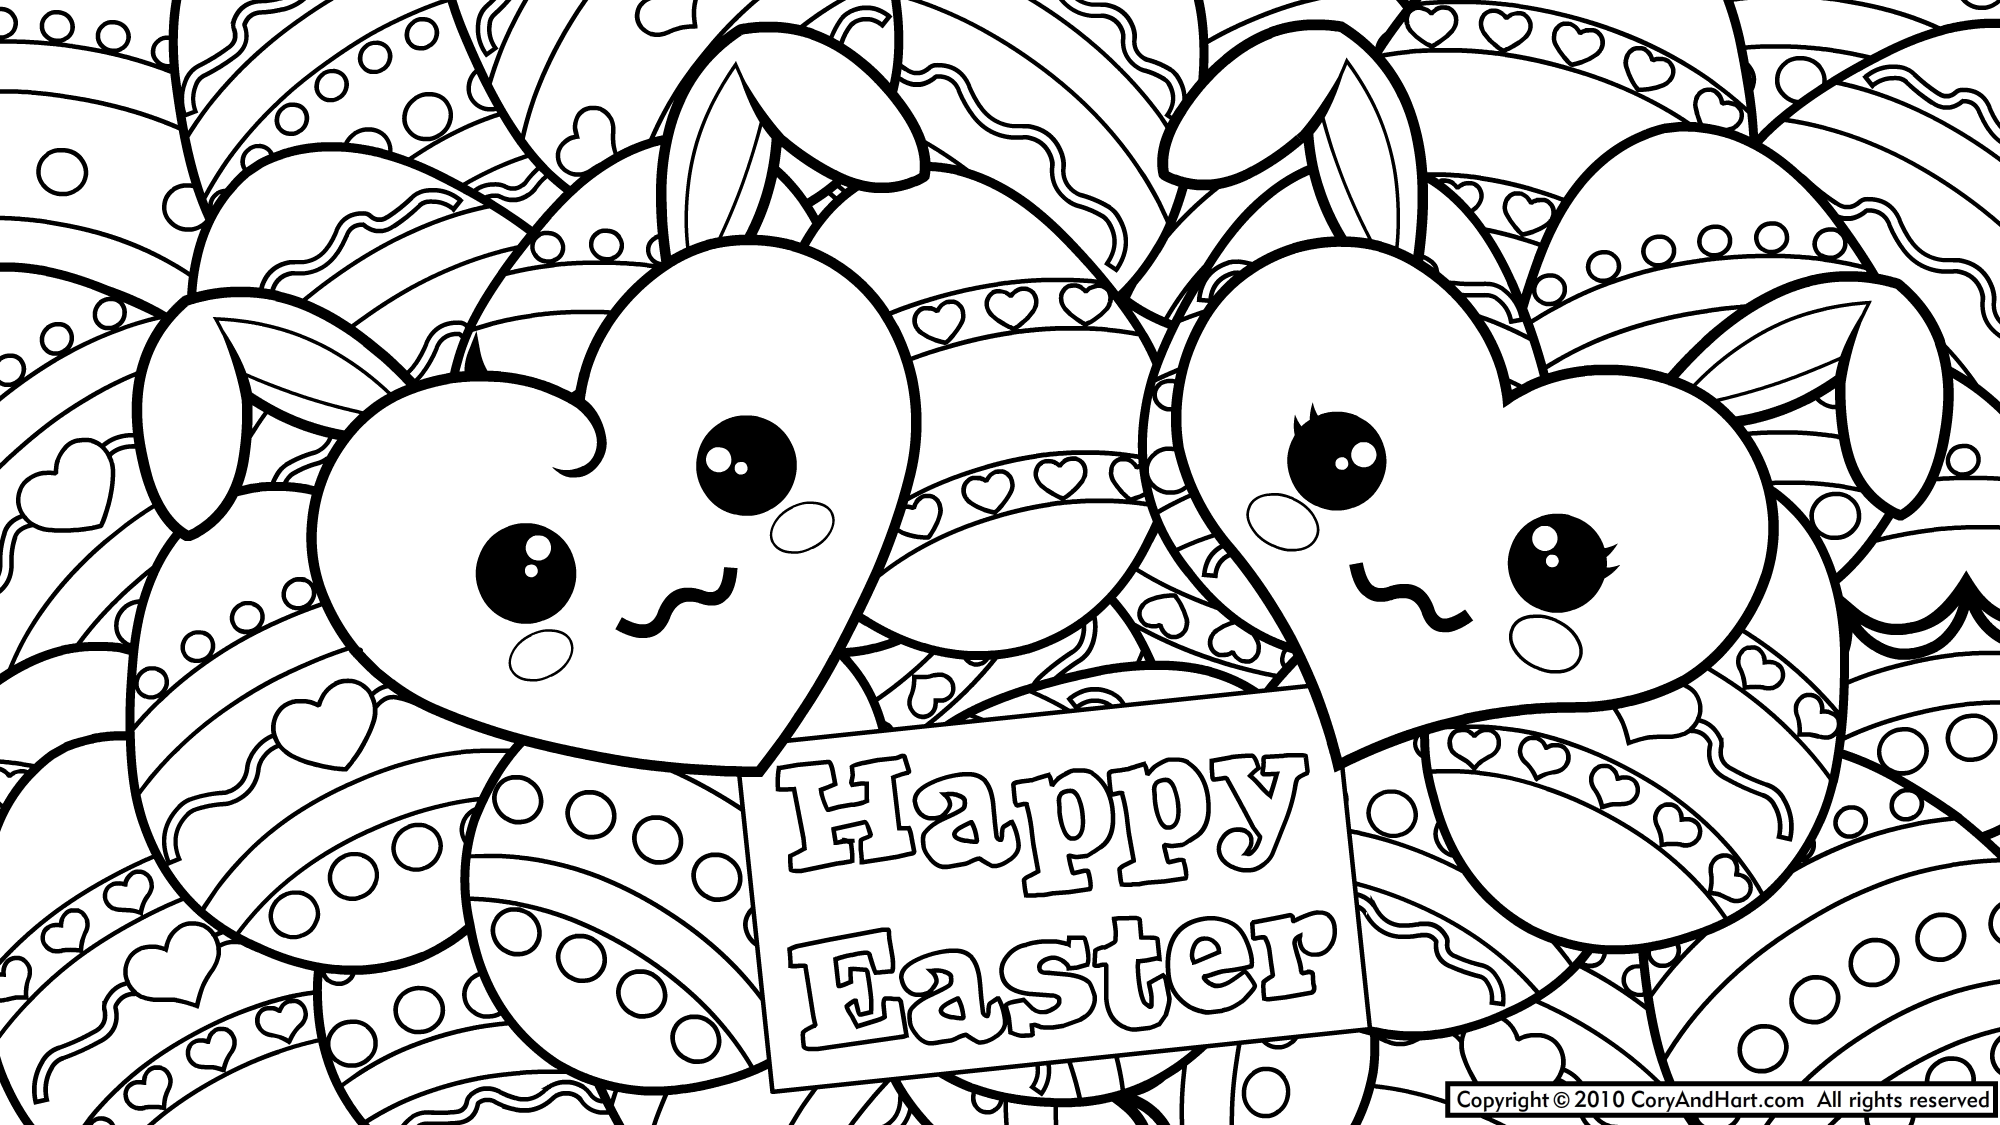 Free Easter Coloring Pages Pdf : Cat coloring pages easter for all ages